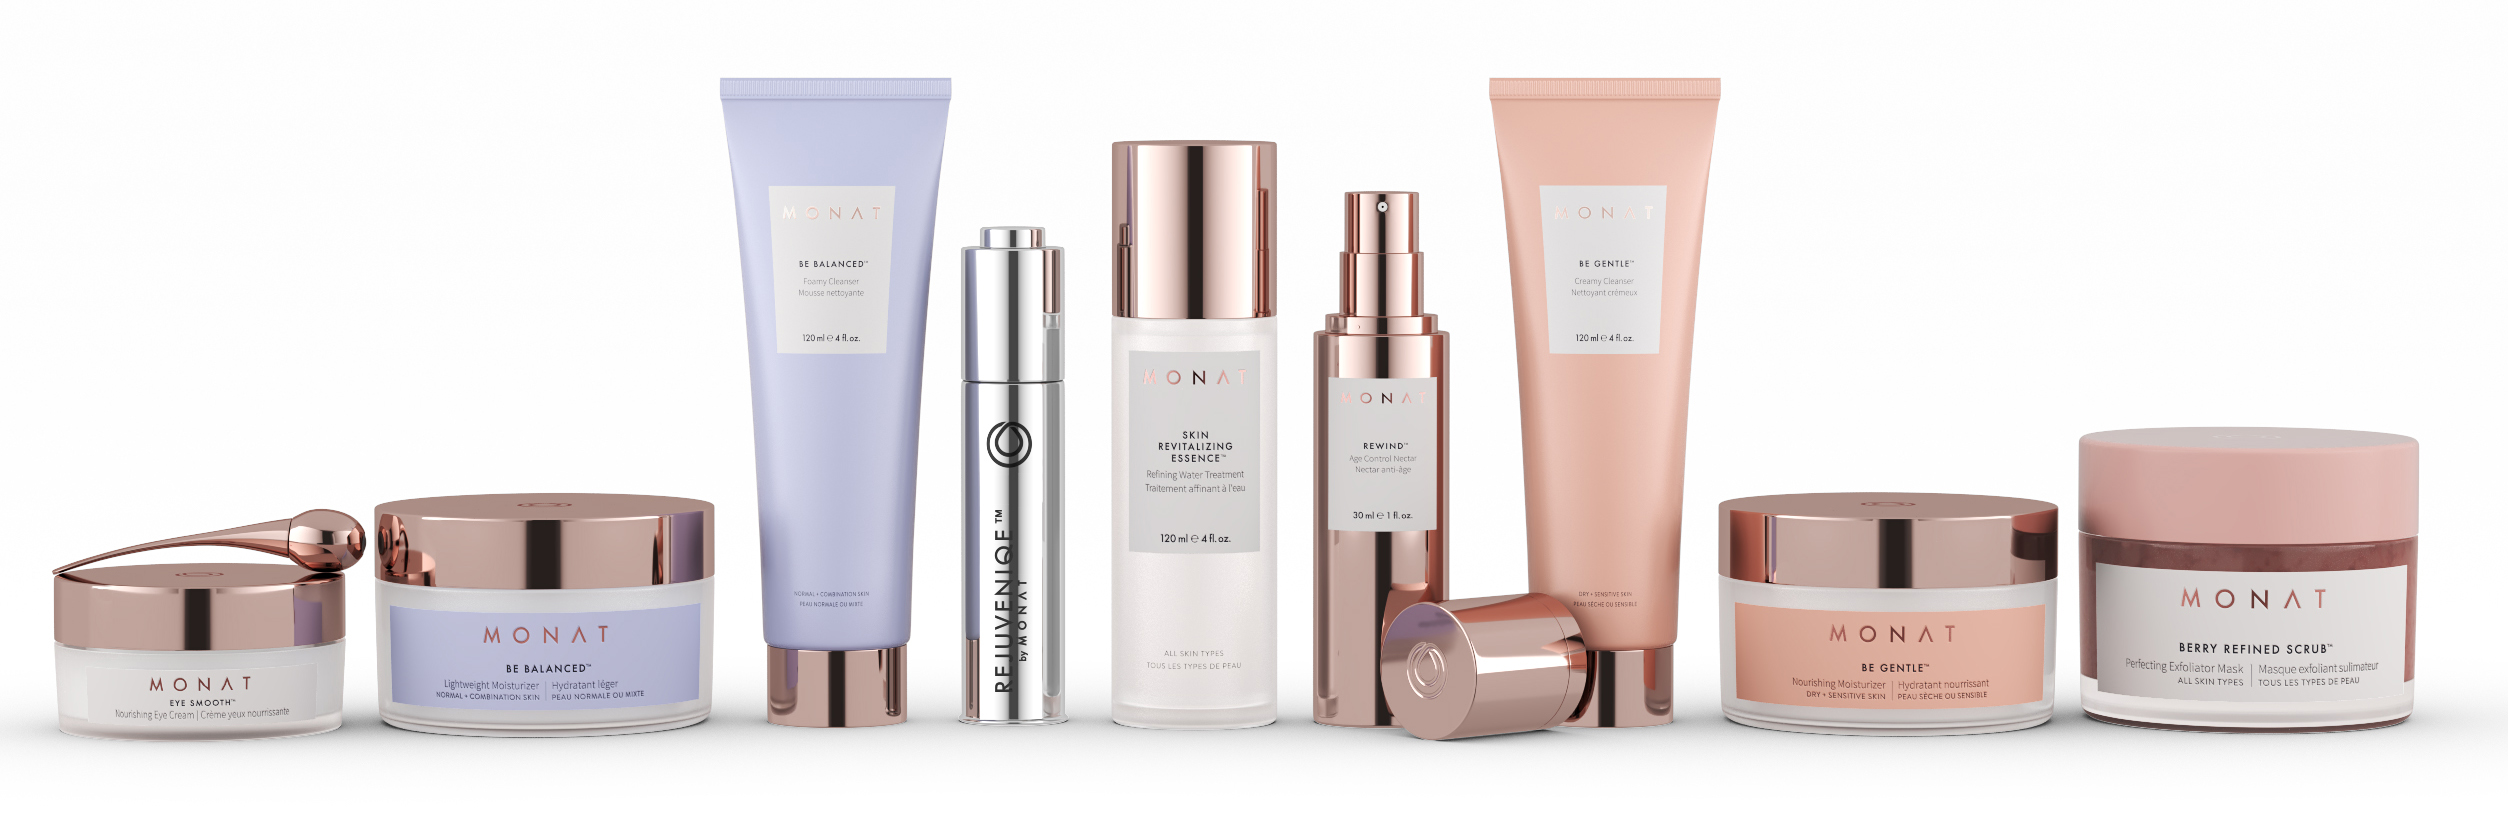 Monat S New Skincare Range Launches In Uk